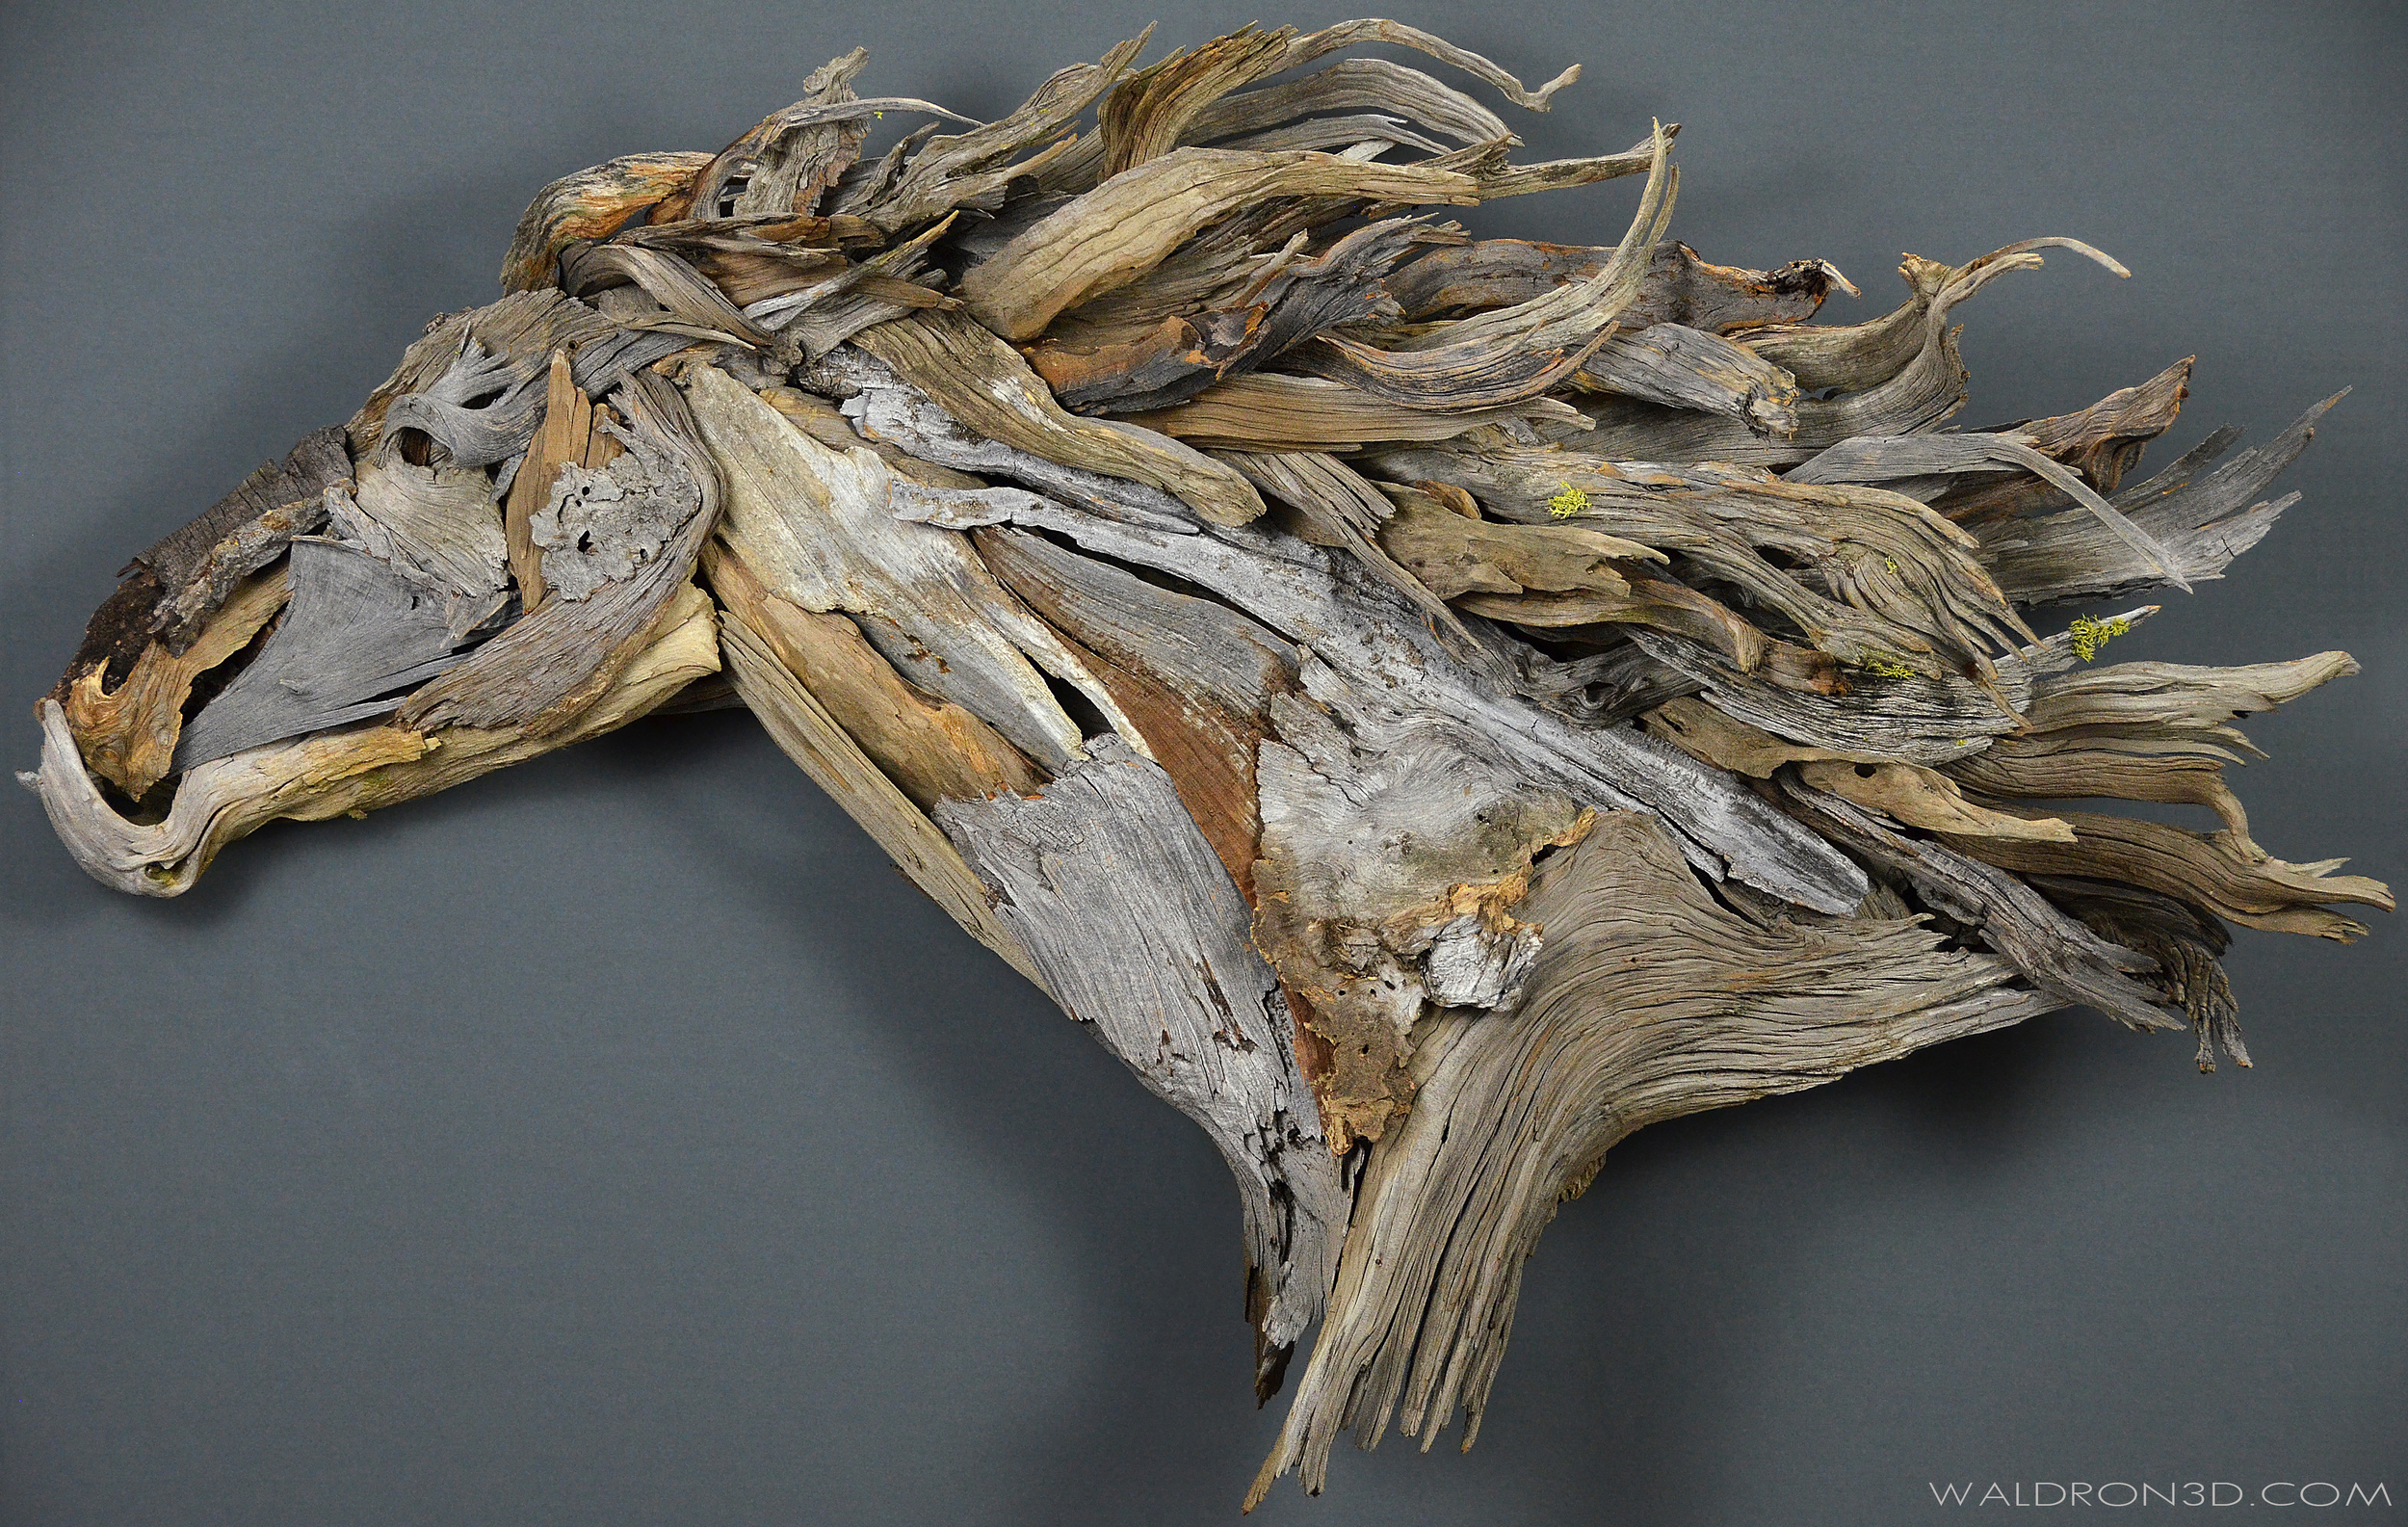 || LIBERATION || WALDRON 3D SCULPTURAL EXPRESSIONS - CONSTRUCTED FROM FORAGED, WEATHERED PIECES OF HIGH DESERT WOOD.